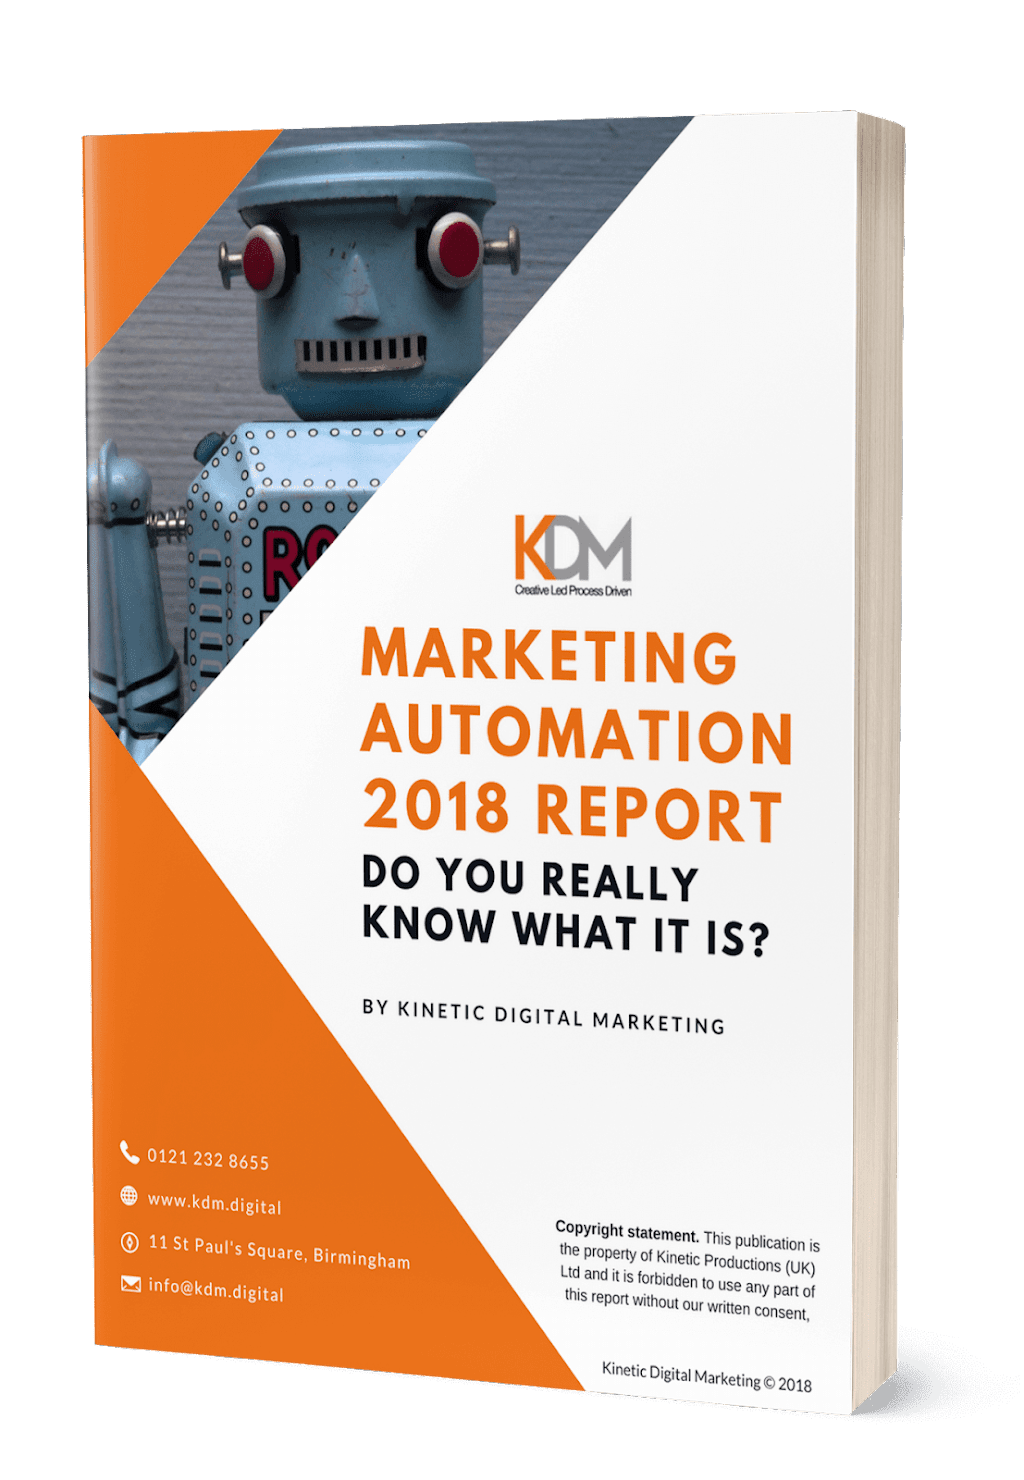 marketing automation 2018 report by KDM digital marketing consultancy